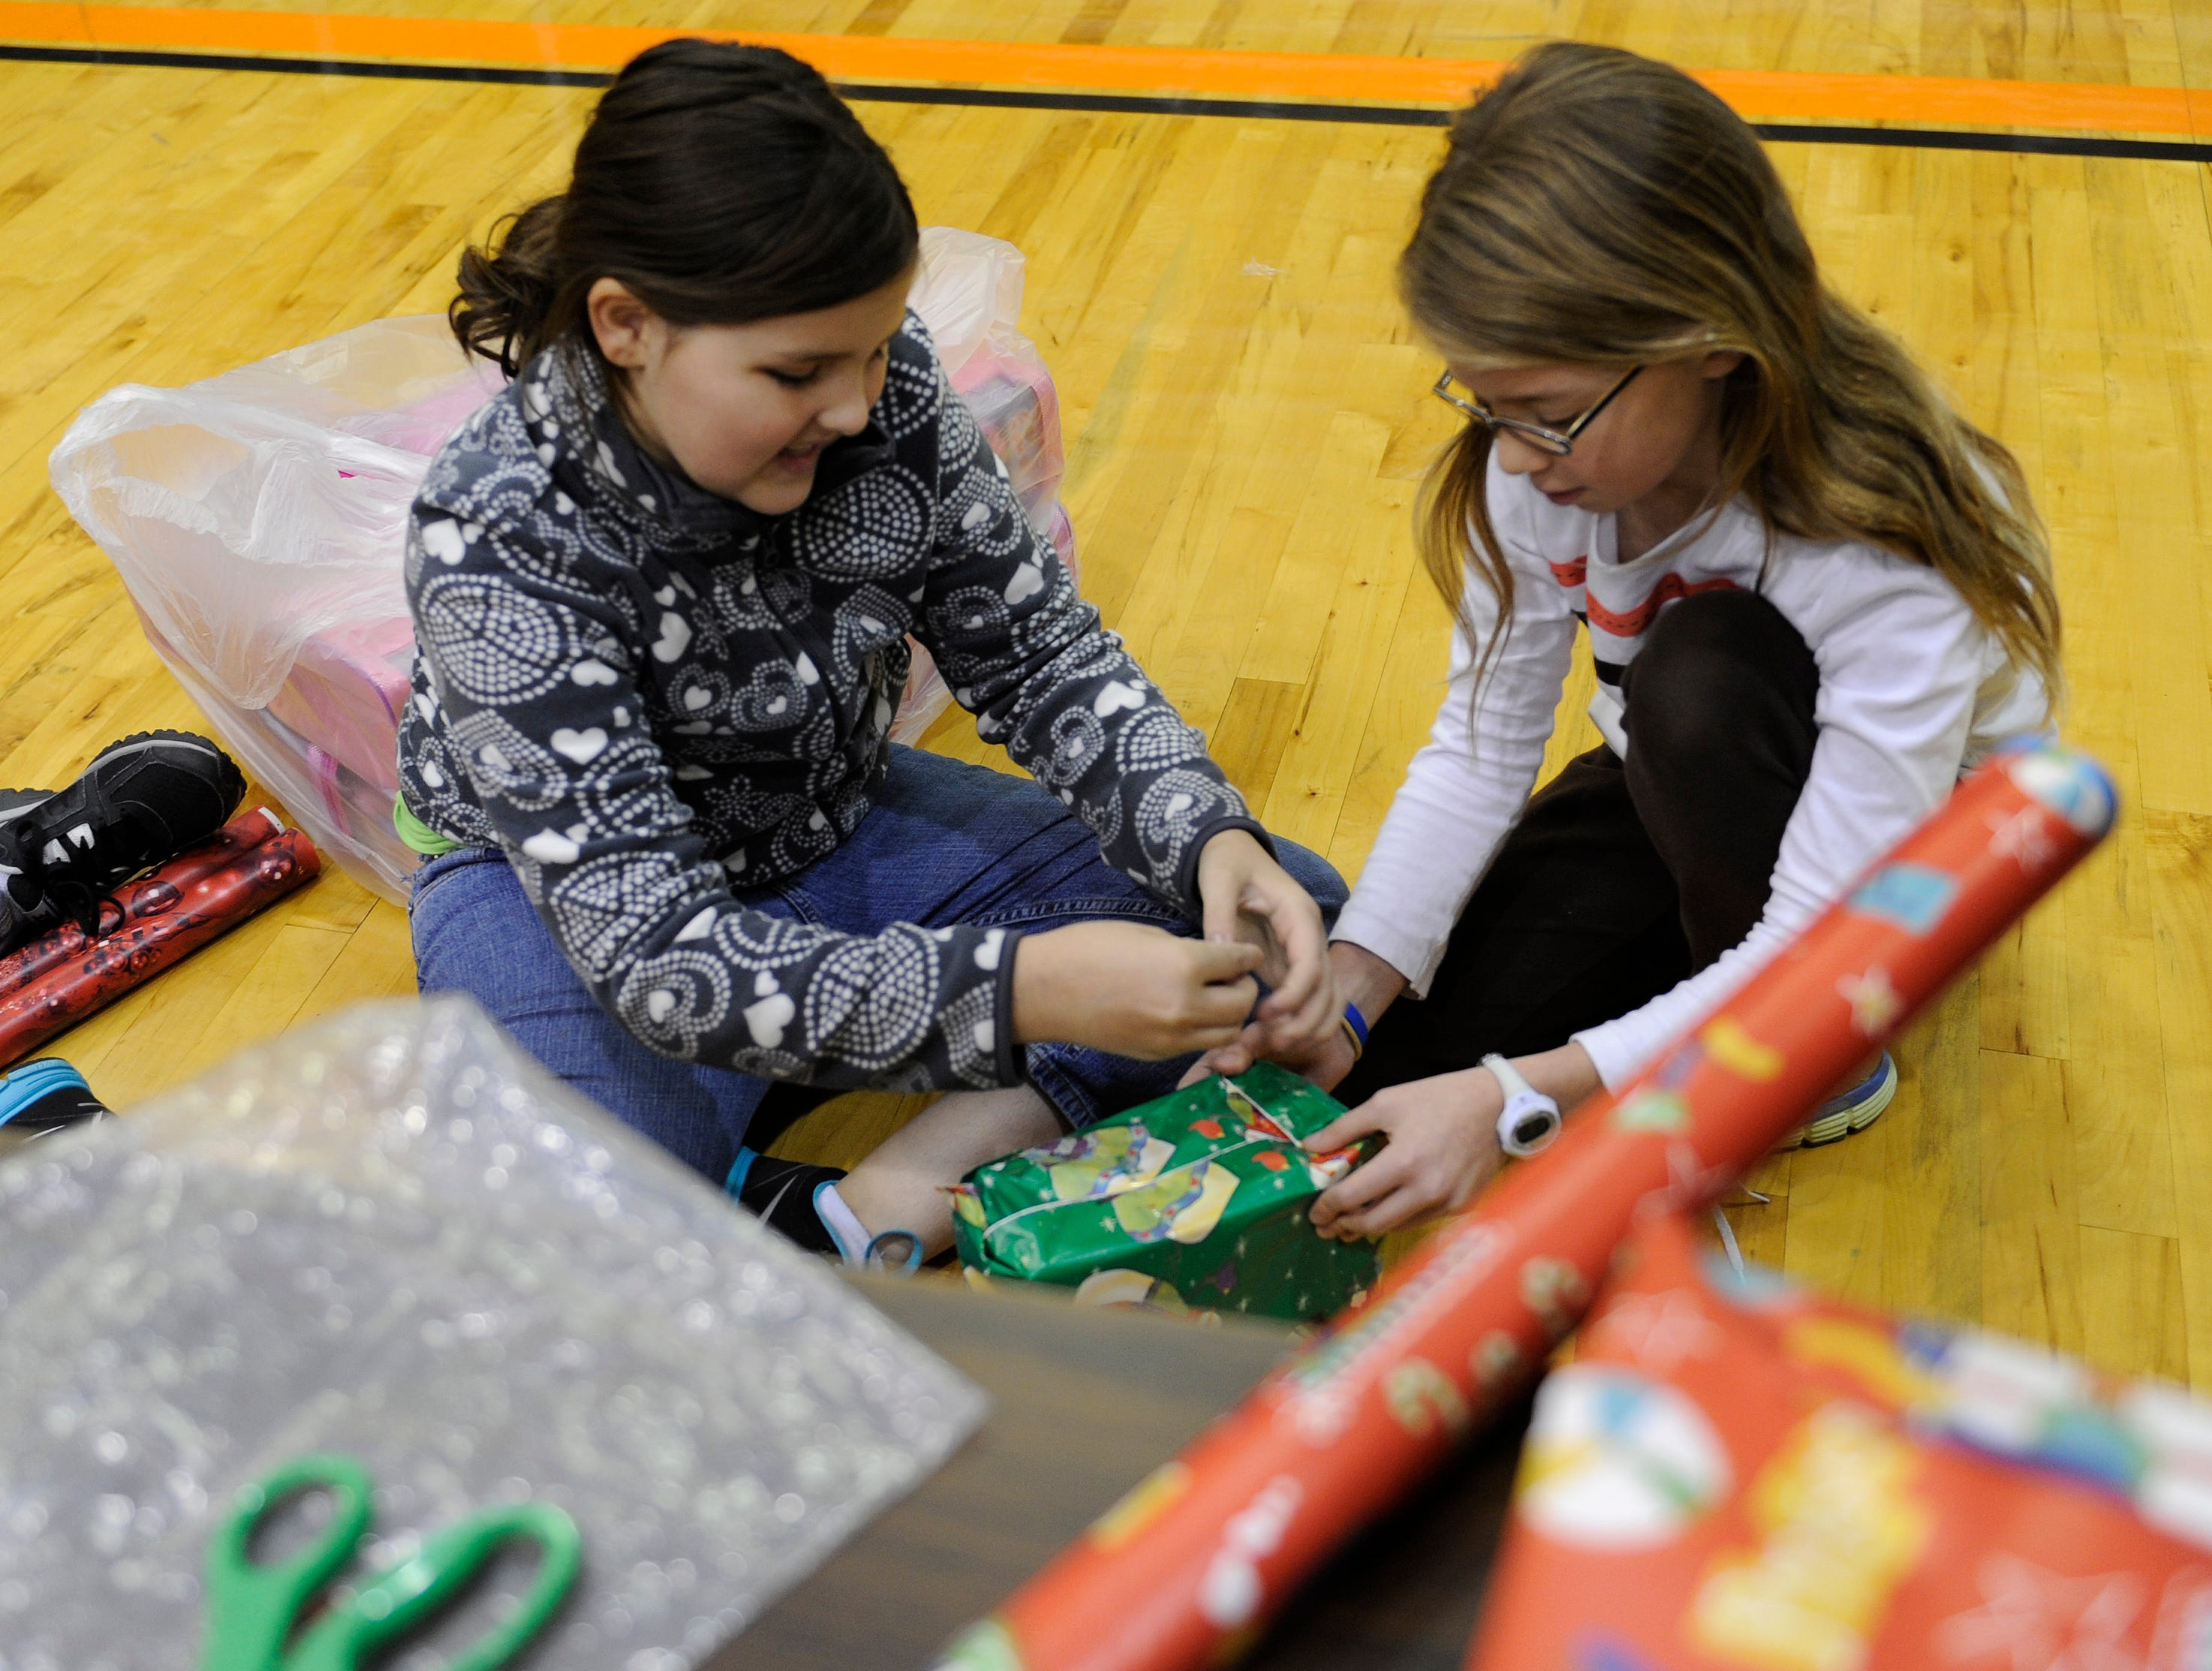 Hally Mills, left, and Ashley Teaster, right, wrap presents for the Knoxville Inner City Kids Outreach Christmas gift program at Park West Church, Saturday, Nov. 25, 2012.